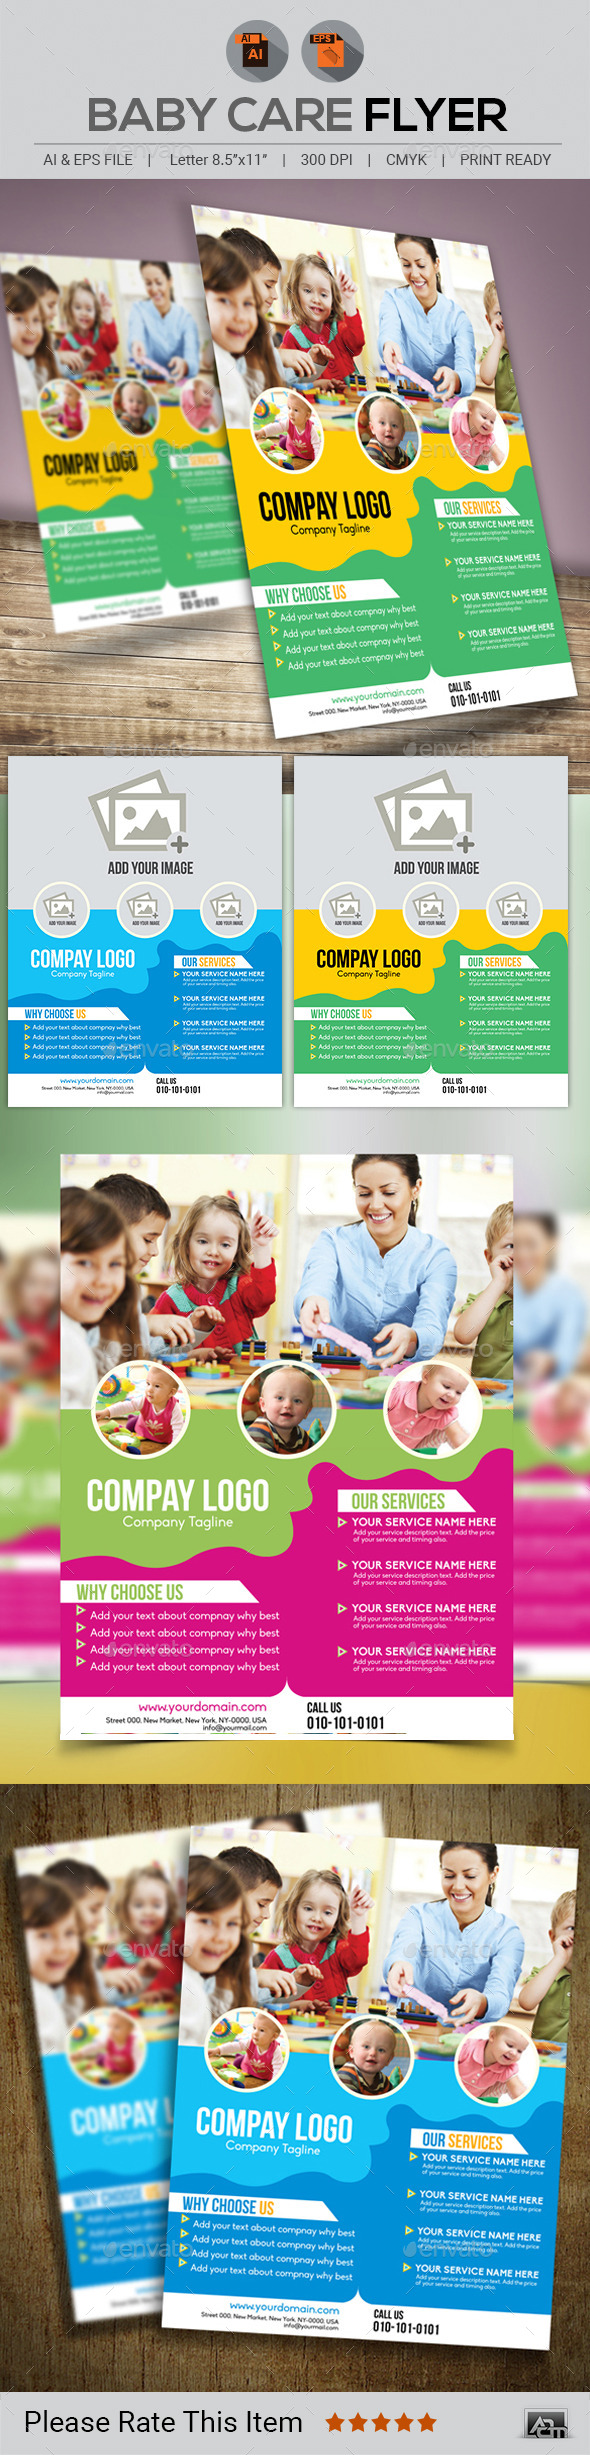 Baby Care Flyer - Corporate Flyers